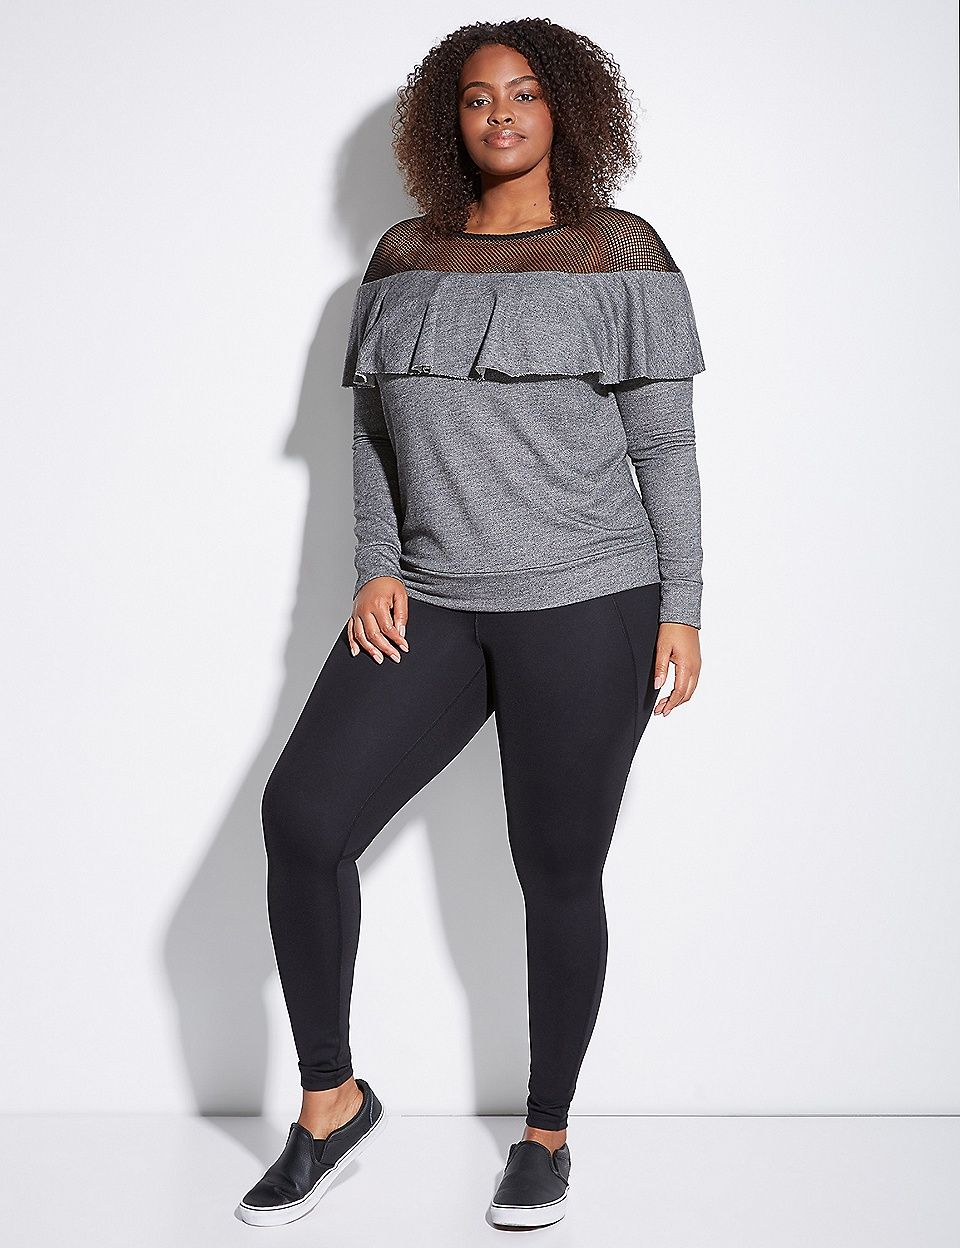 75dda186e02 Active Ruffle Sweatshirt with Mesh Yoke